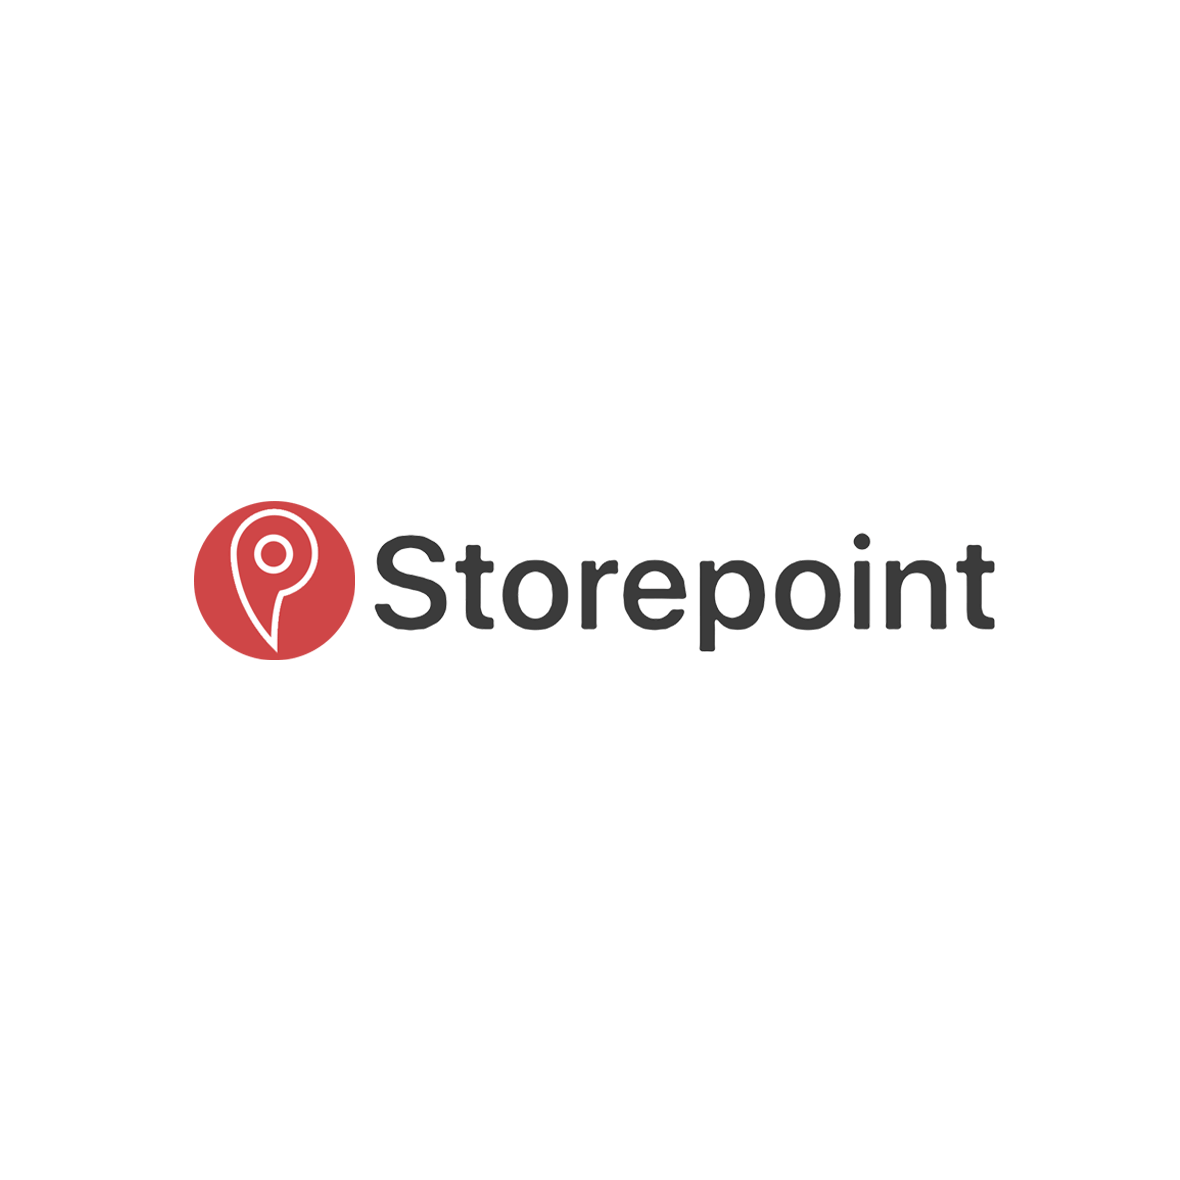 Storepoint